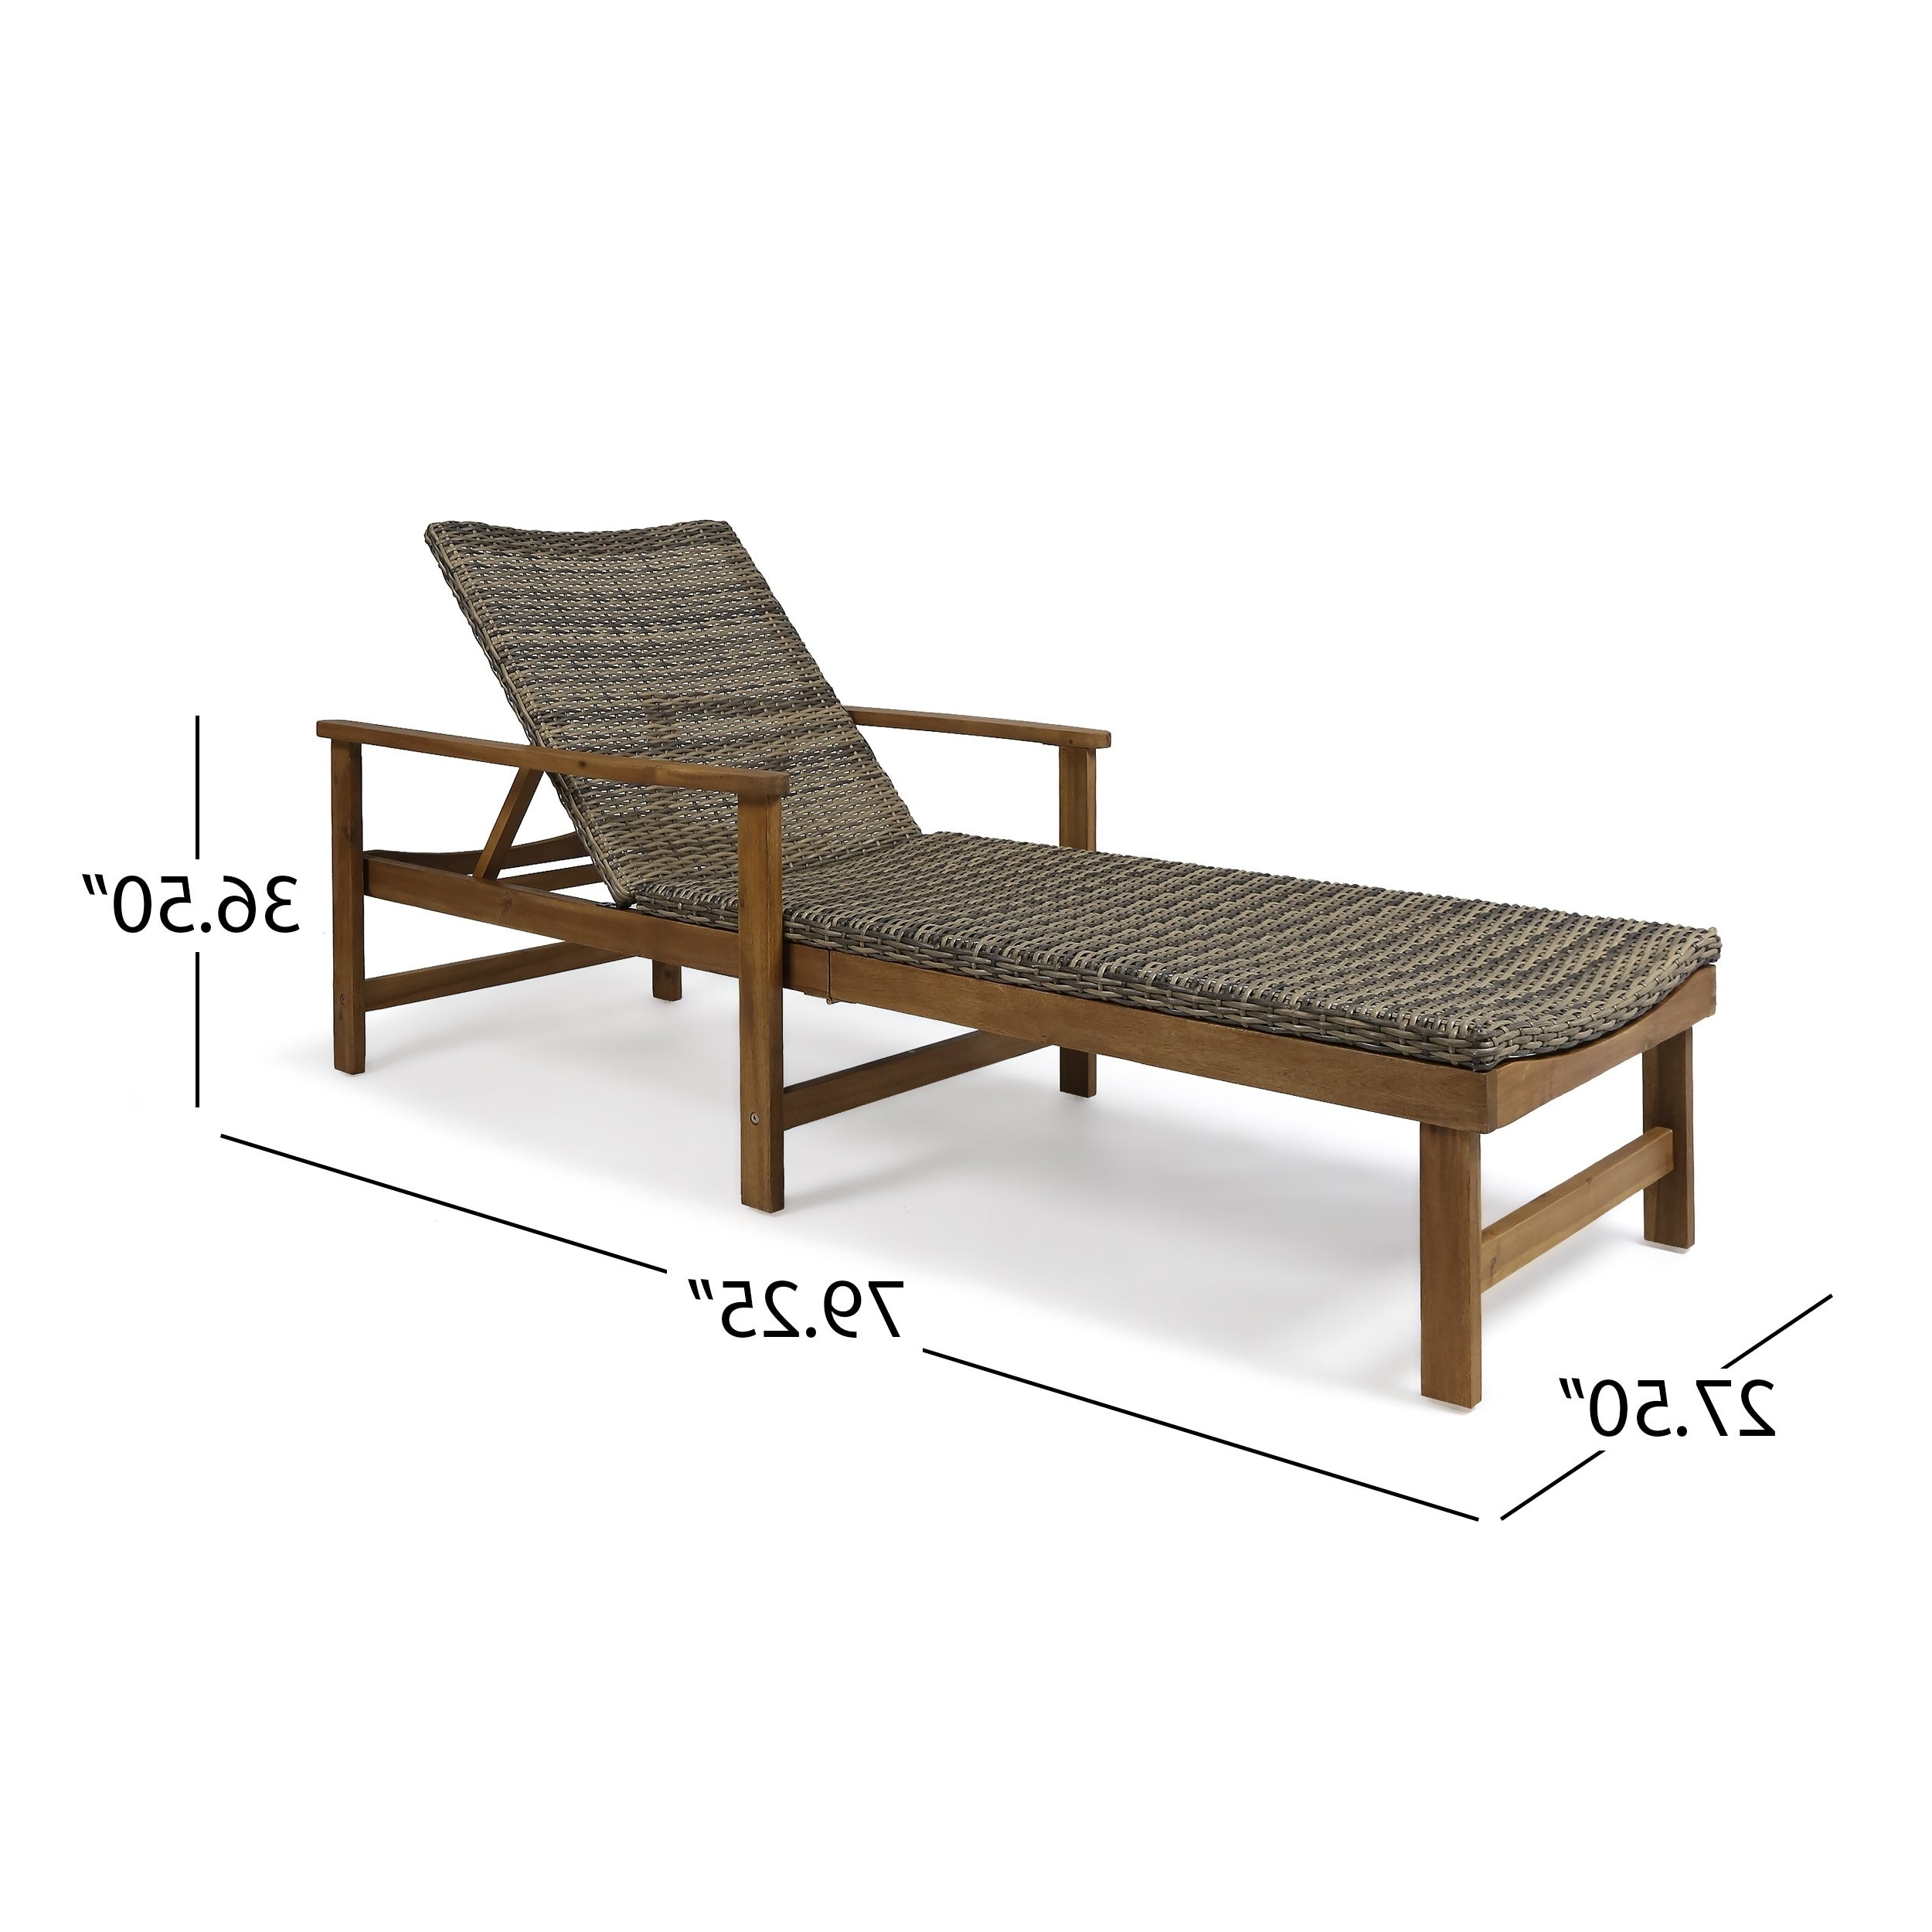 Favorite Outdoor Living Manteca Ash Grey Acacia Wood Lounge Chairs Regarding Hampton Outdoor Chaise Lounges Acacia Wood And Wicker (Set Of 2) Christopher Knight Home (View 5 of 25)